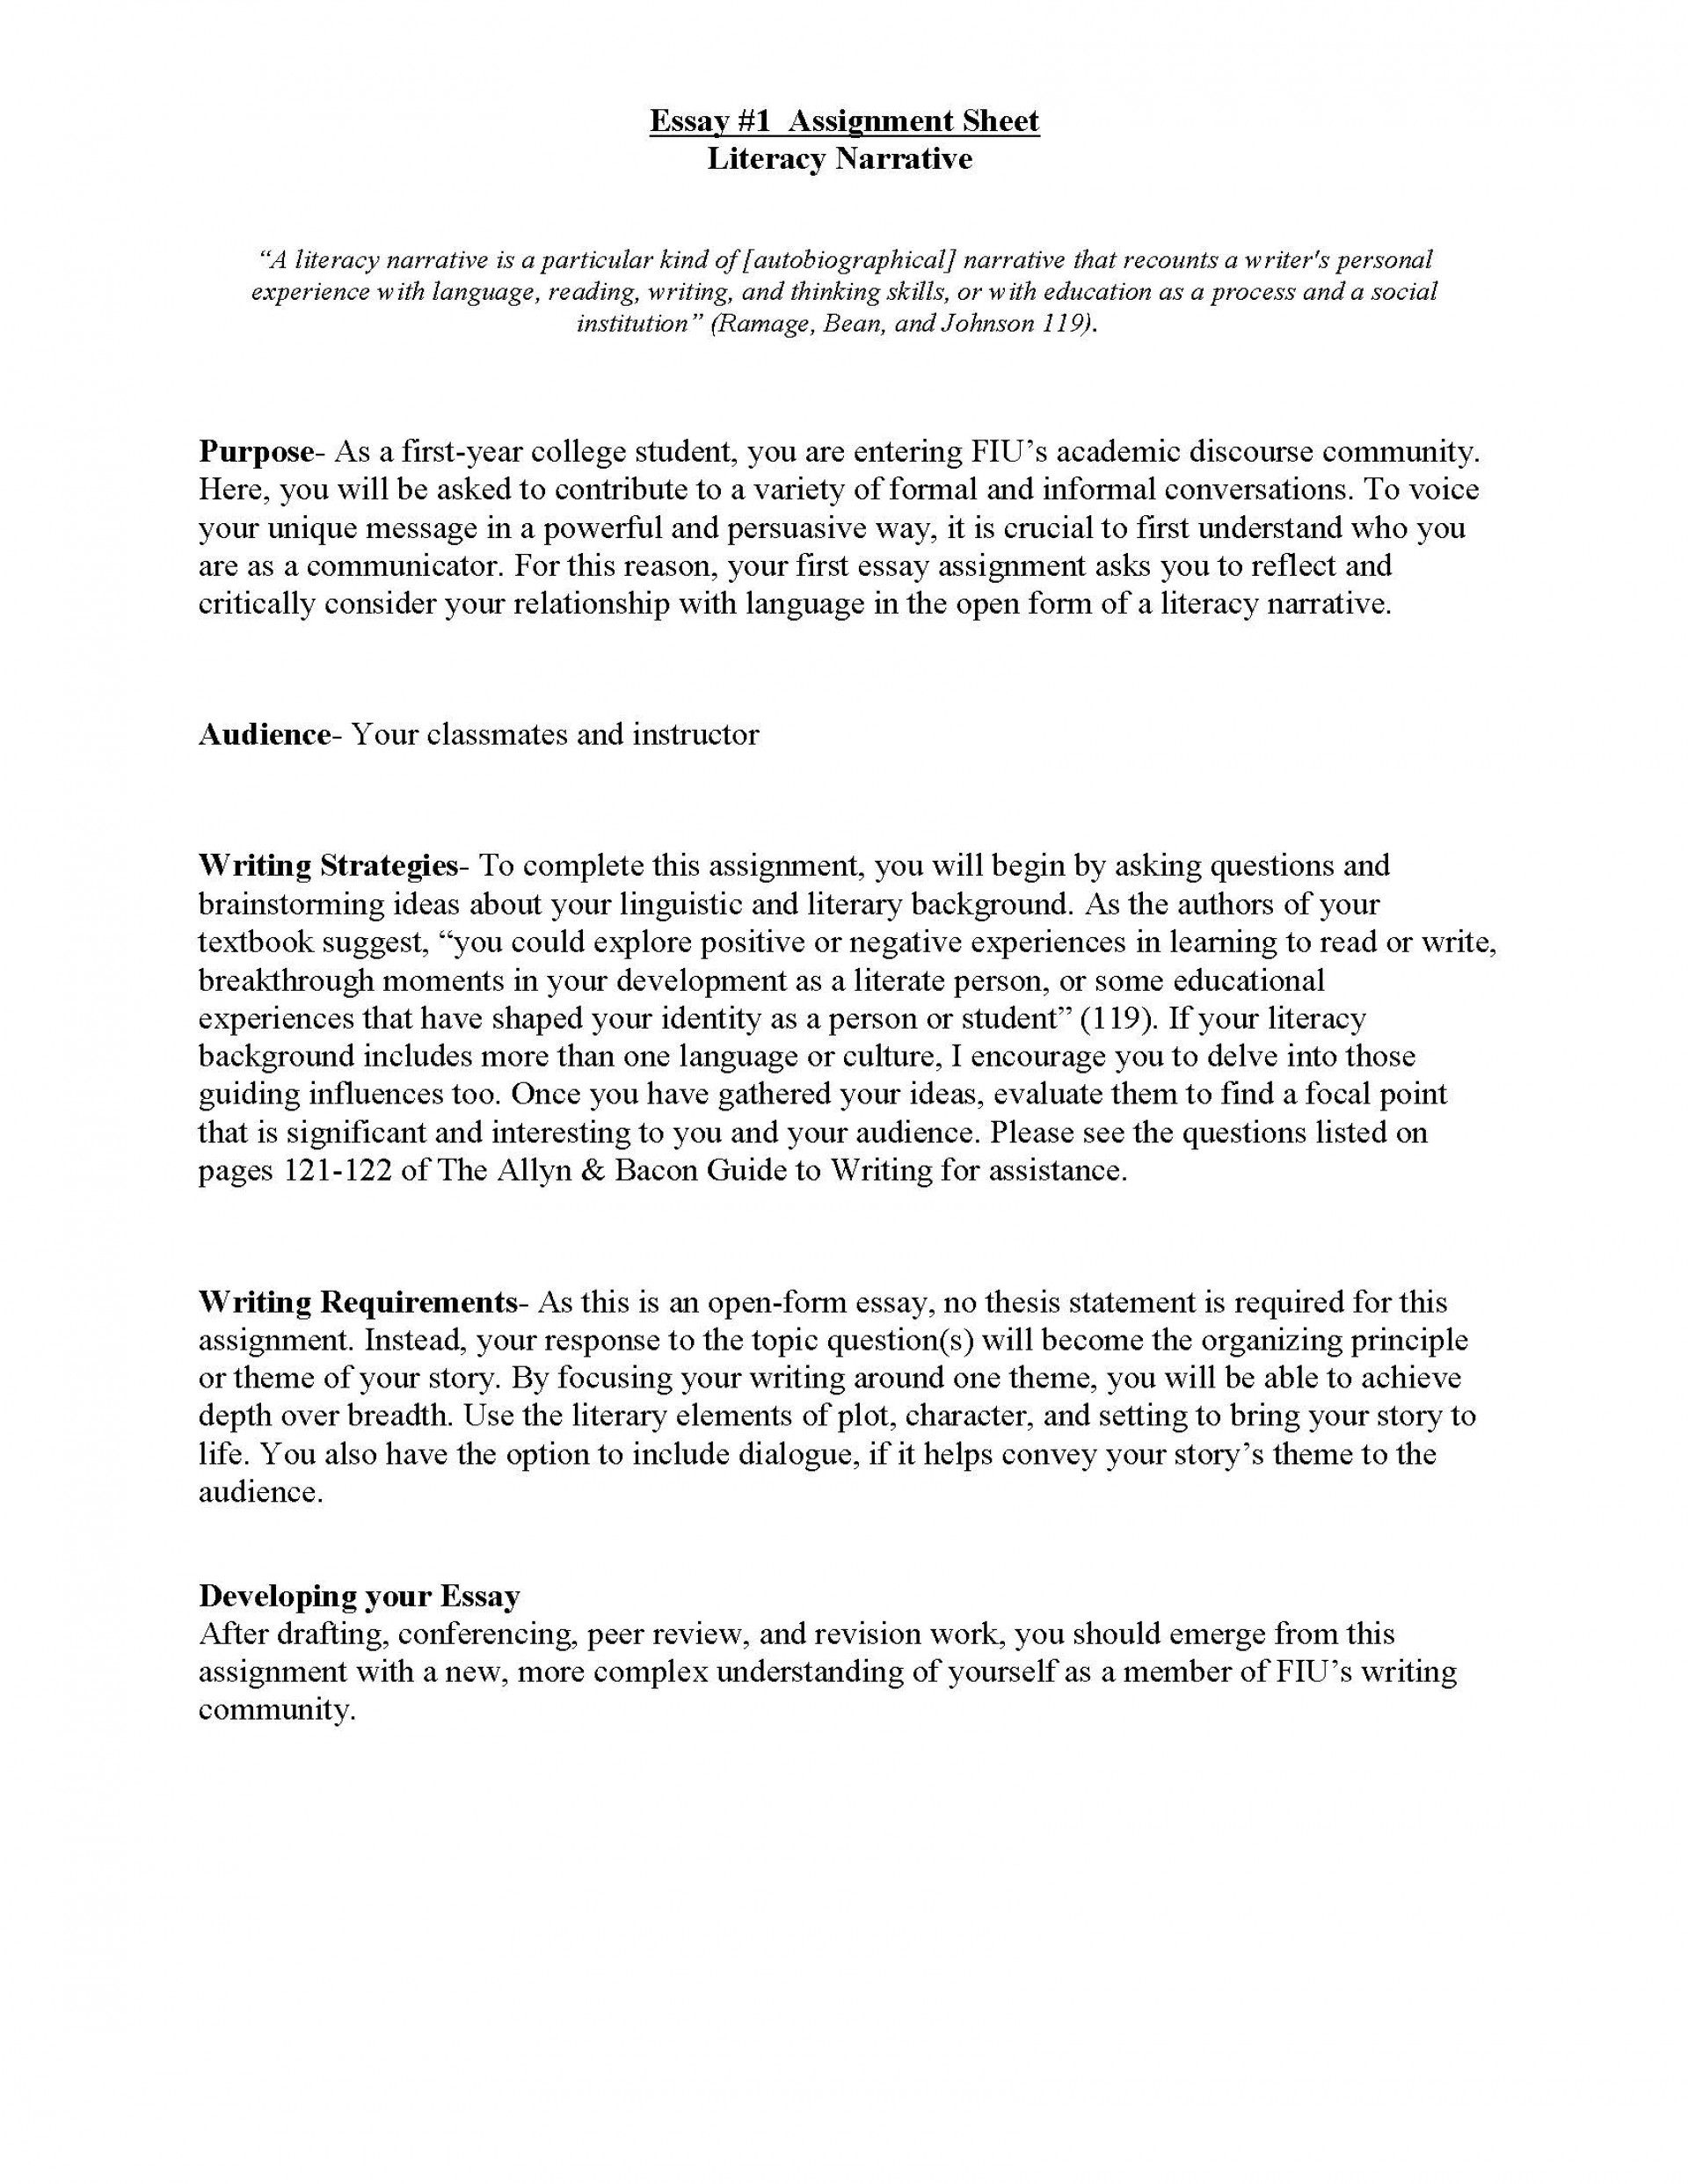 013 Essay Example Literacy Narrative Unitssignment Spring 2012 Page 1 Writing Amazing A About Being Judged Quizlet Powerpoint 1920